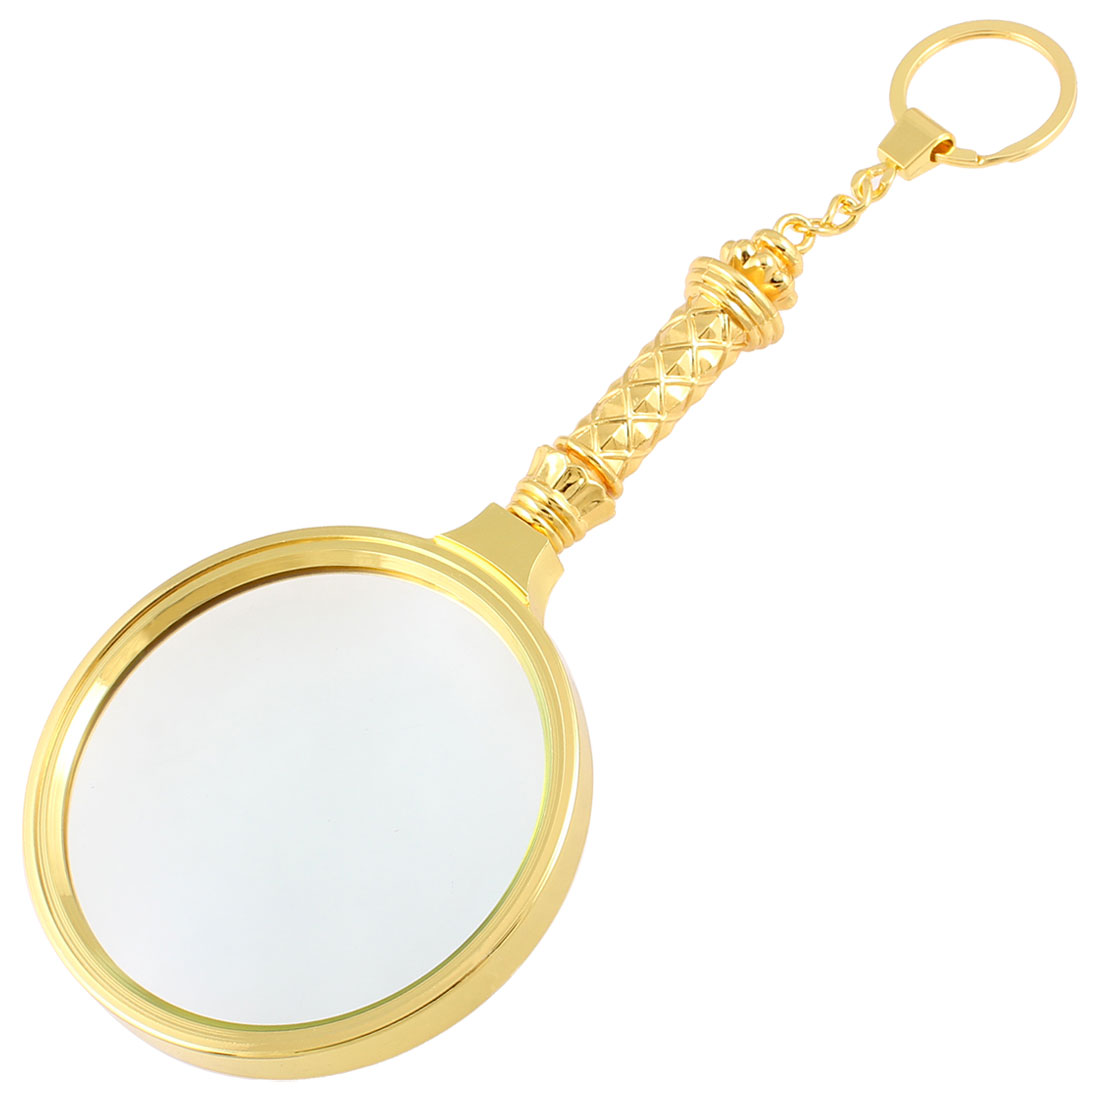 Gold Tone Metal Handle 78mm Dia.Lens Magnifier Magnifying Glass Keyring 4X